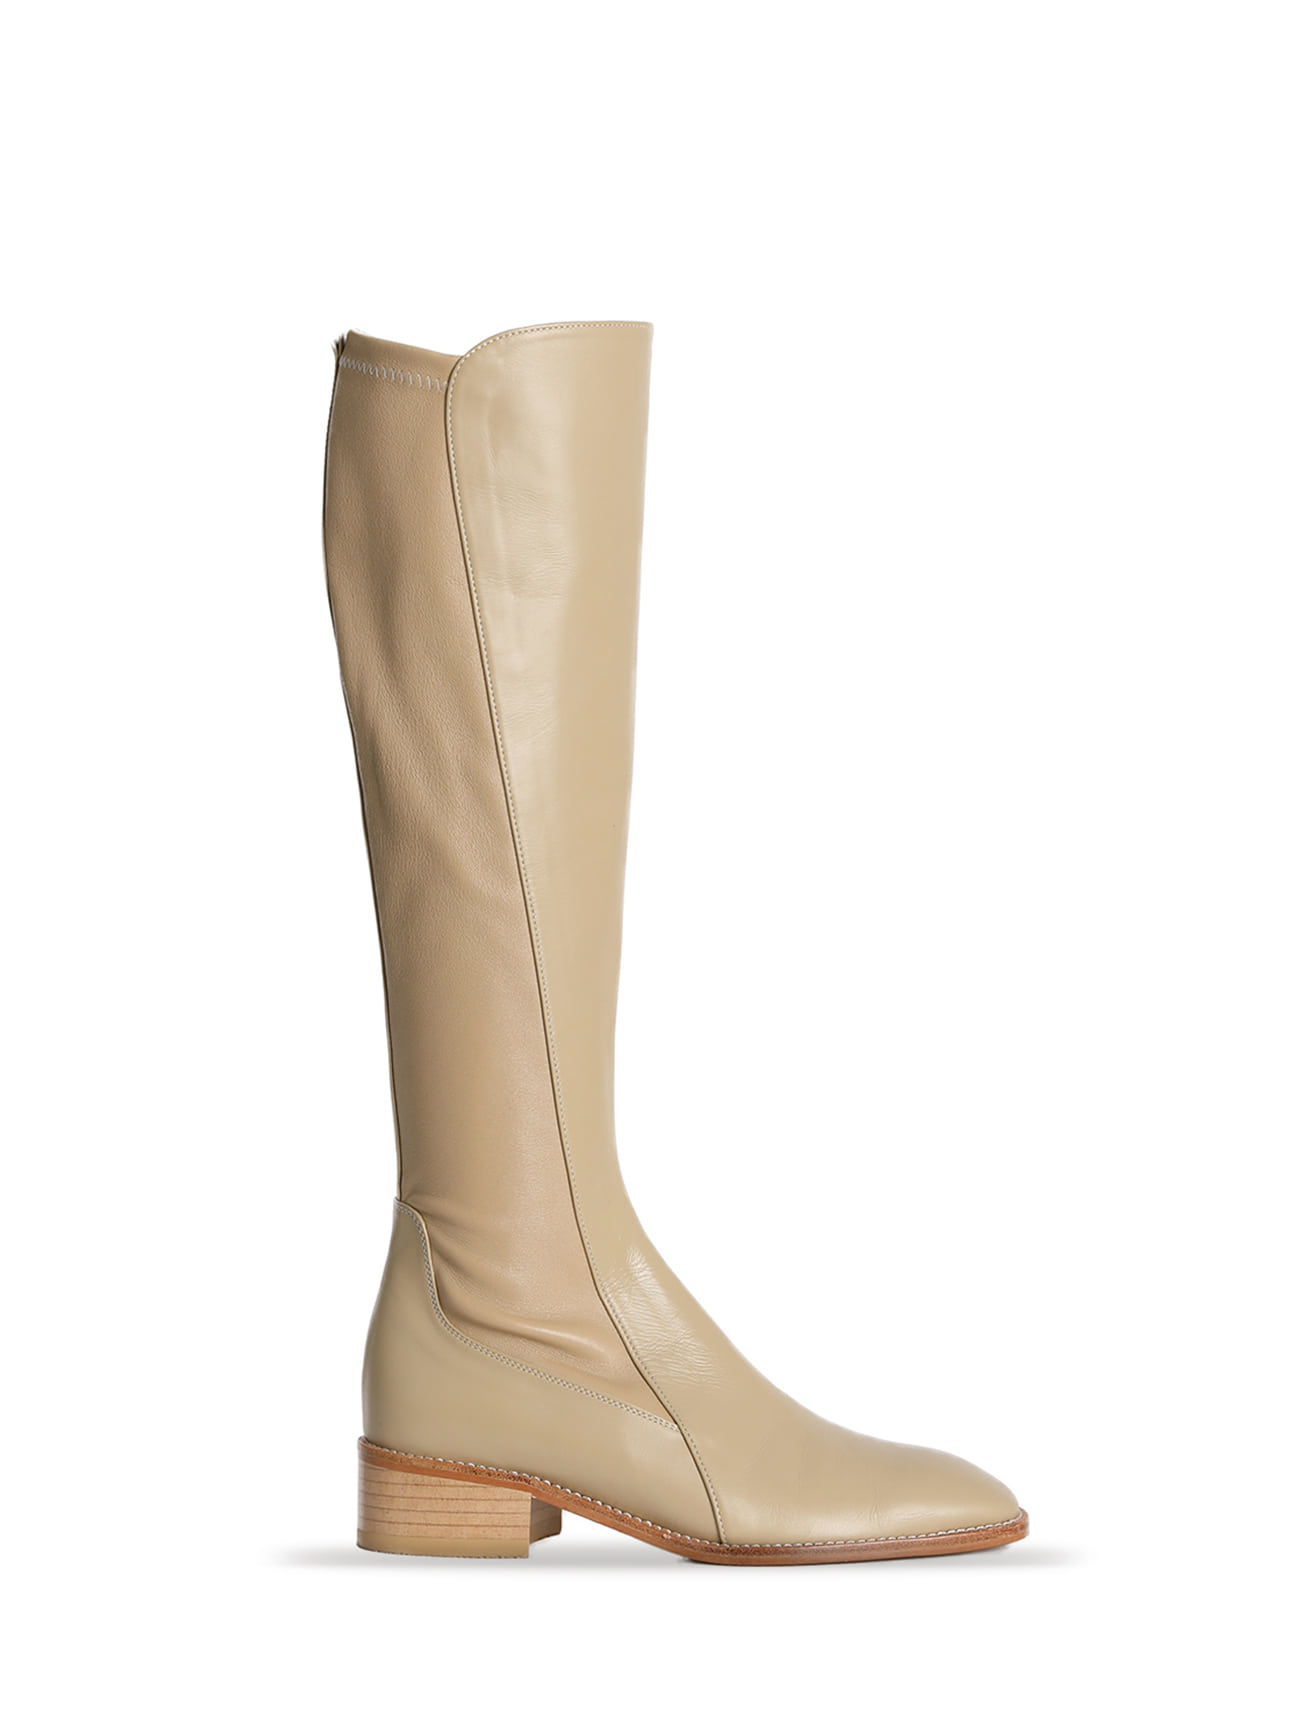 JACKSON LEATHER KNEE-HIGH BOOTS - BEIGE (4cm)